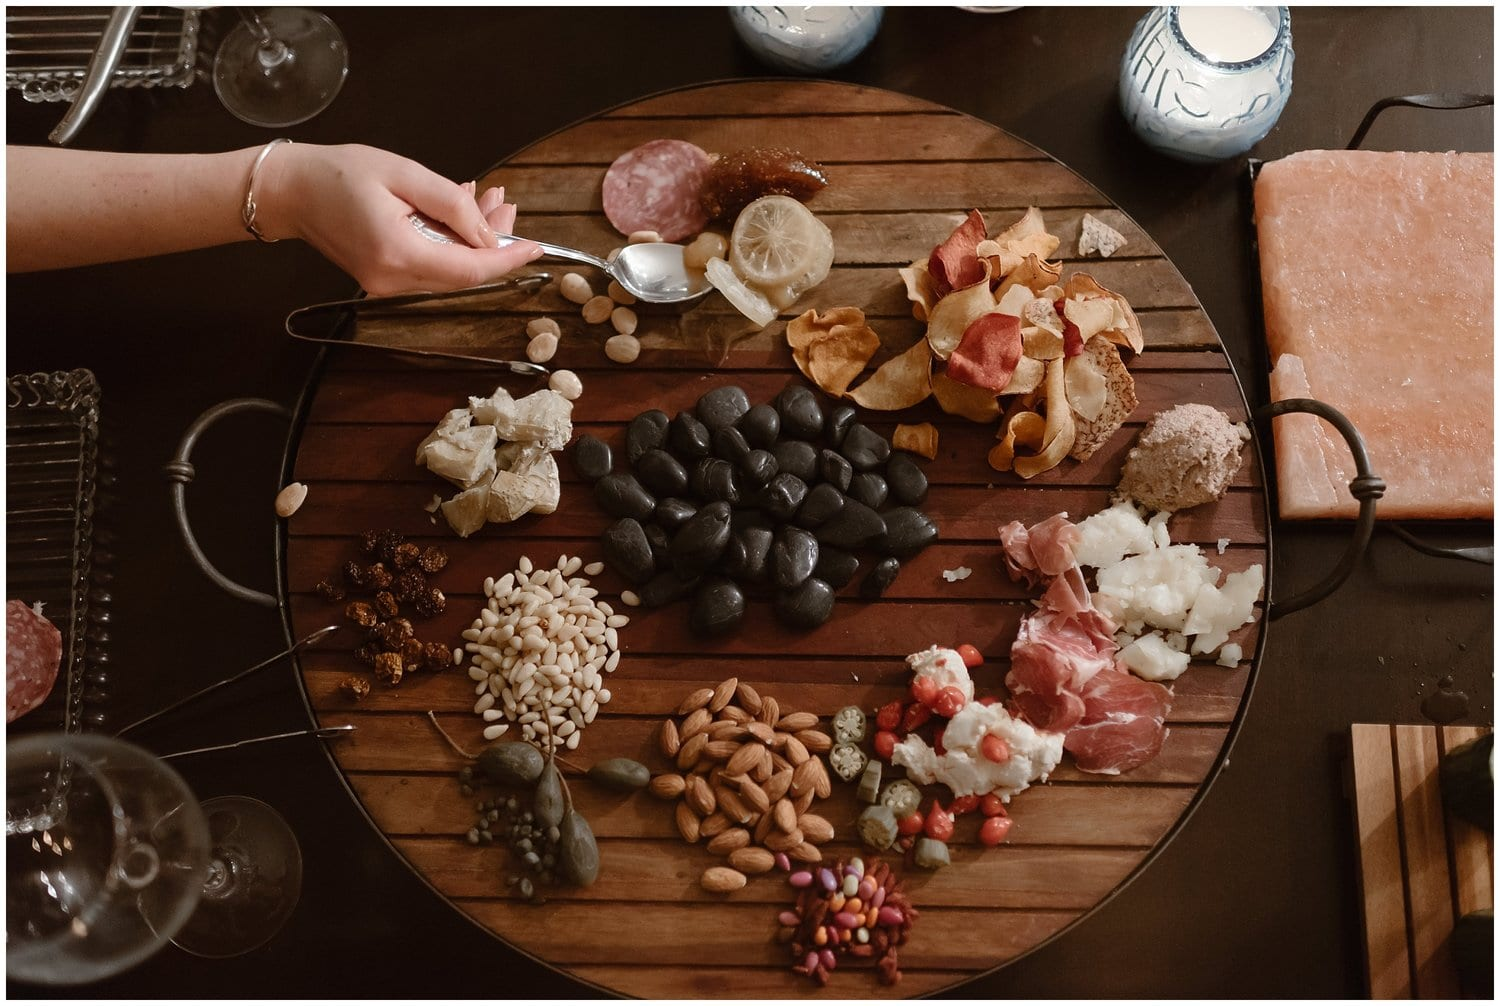 Close up of a charcuterie board filled with nuts, cheese, meat, fruit, and more.